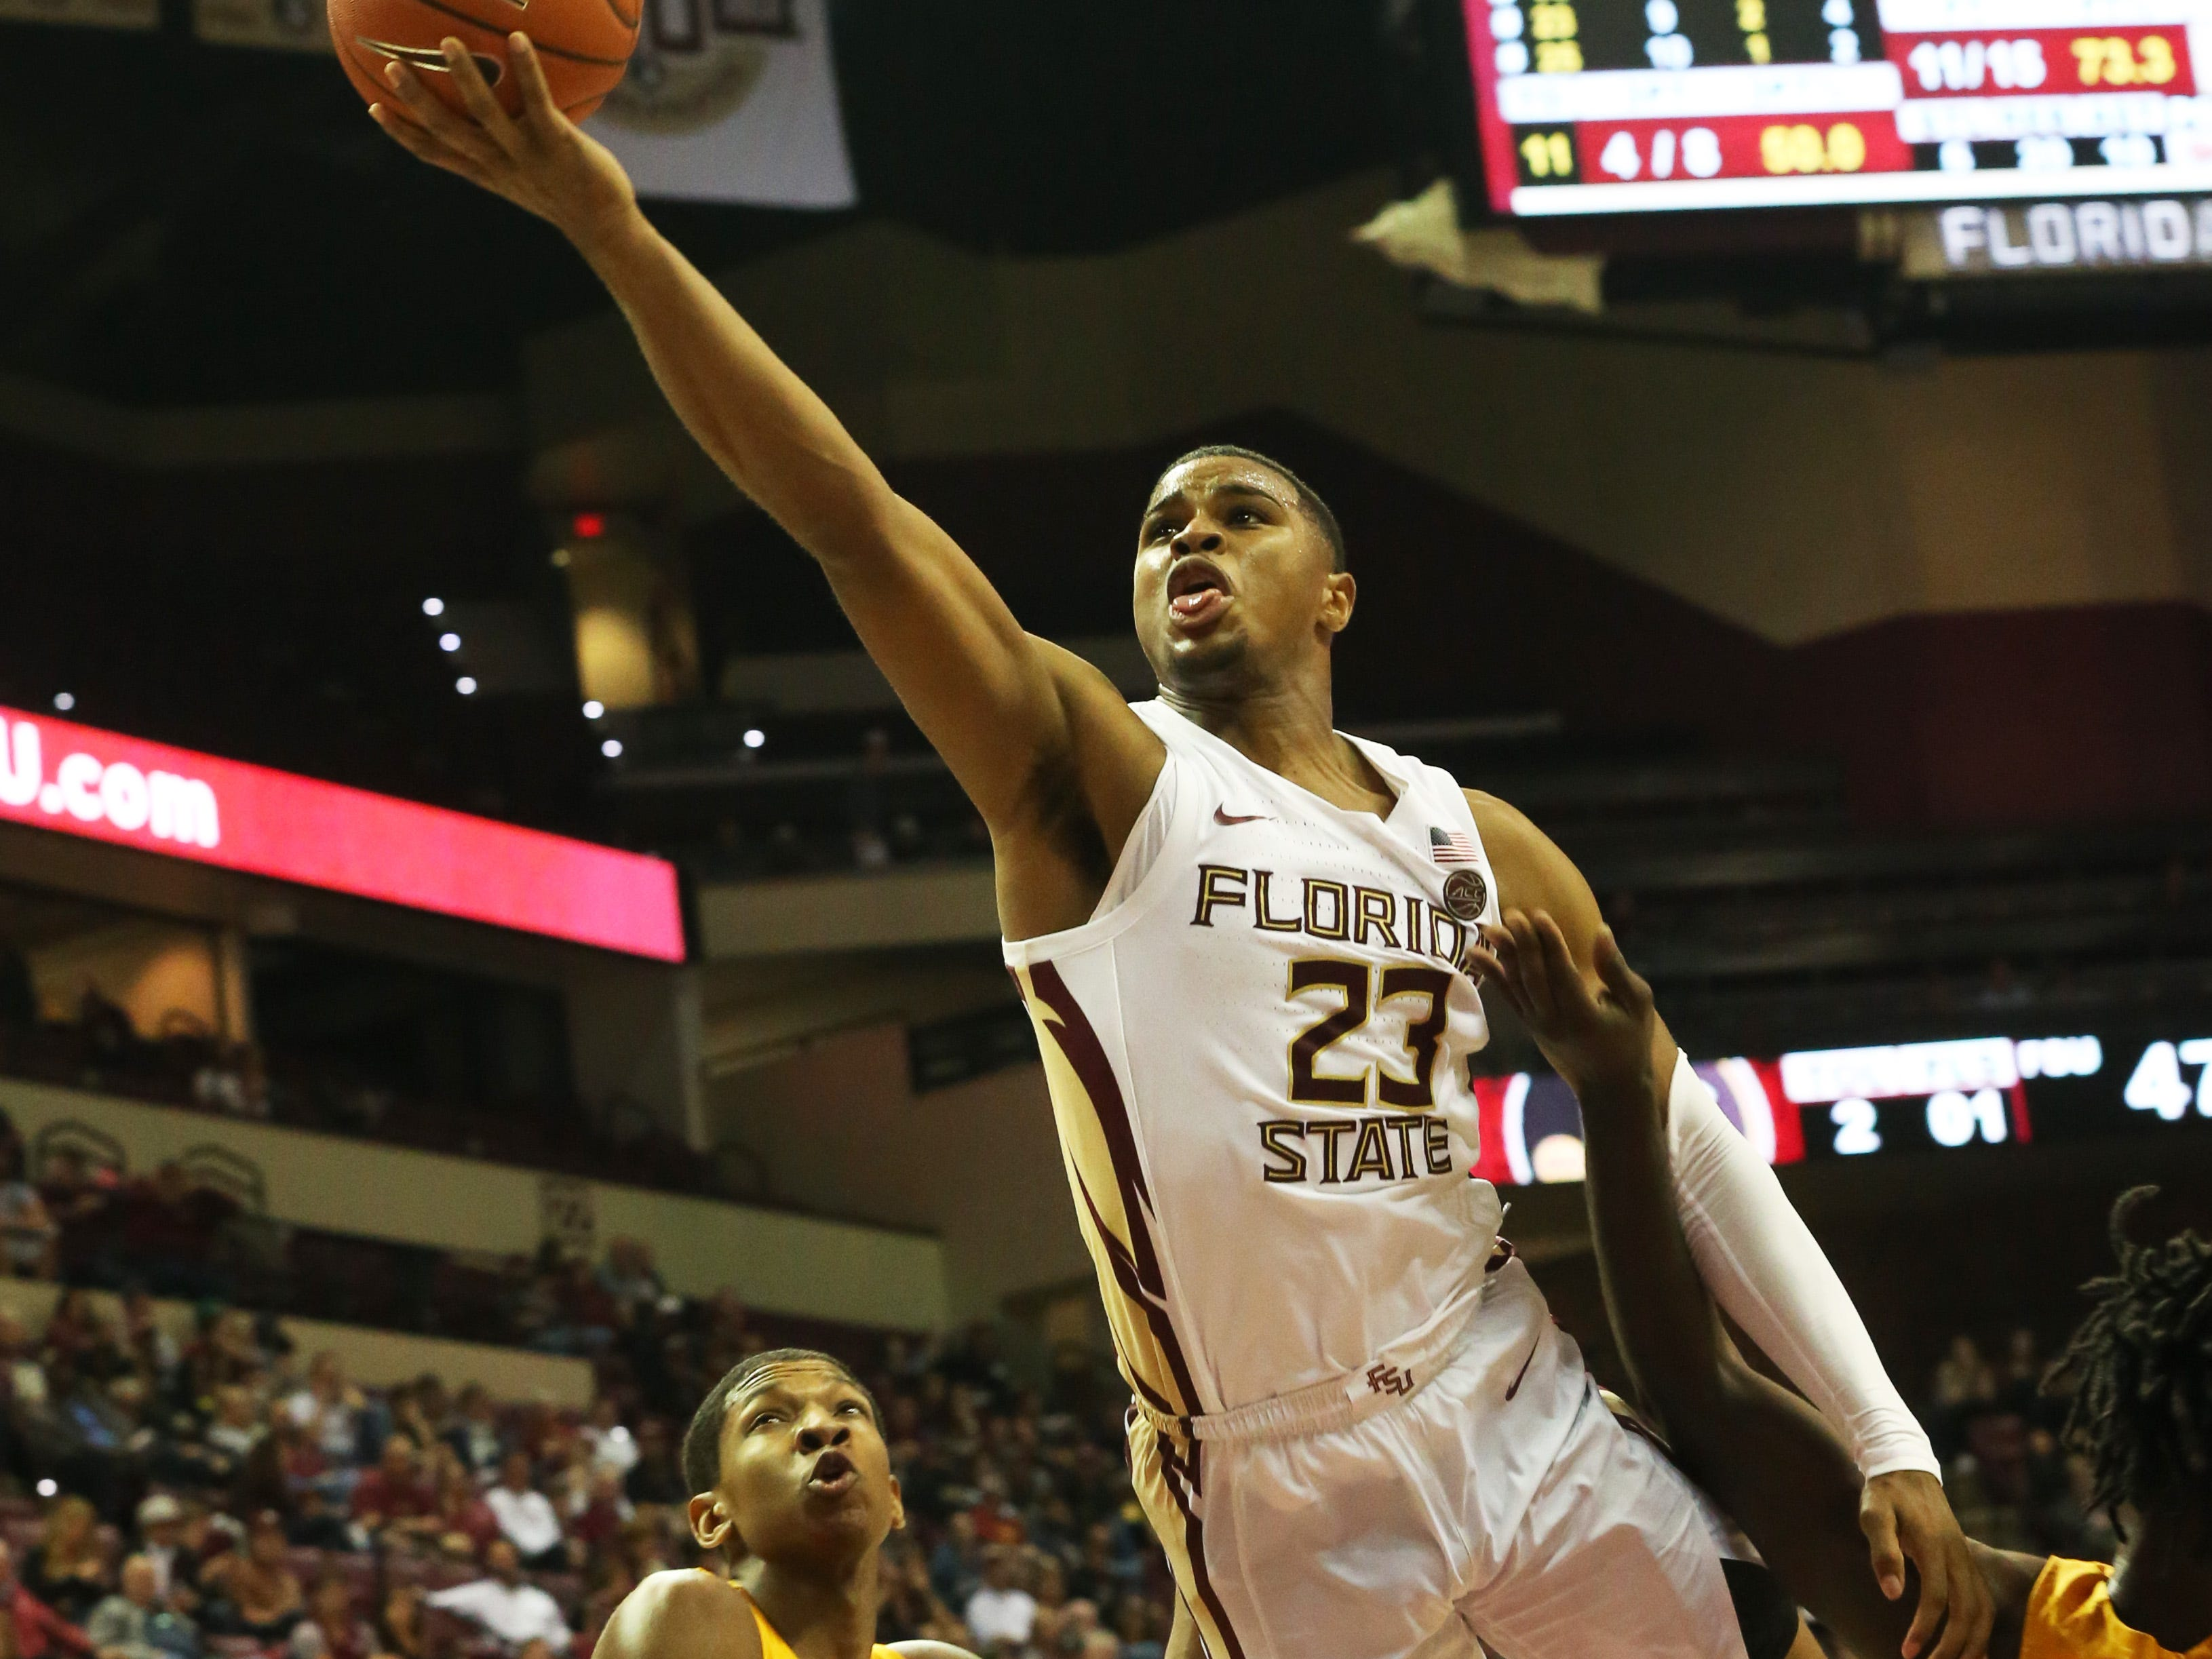 Florida State Seminoles guard M.J. Walker (23) reaches for the basket as the Florida State Seminoles host the Canisius Golden Griffins for basketball in the Tucker Civic Center, Monday, Nov. 19, 2018. The Seminoles beat the Golden Griffins 93 - 61.